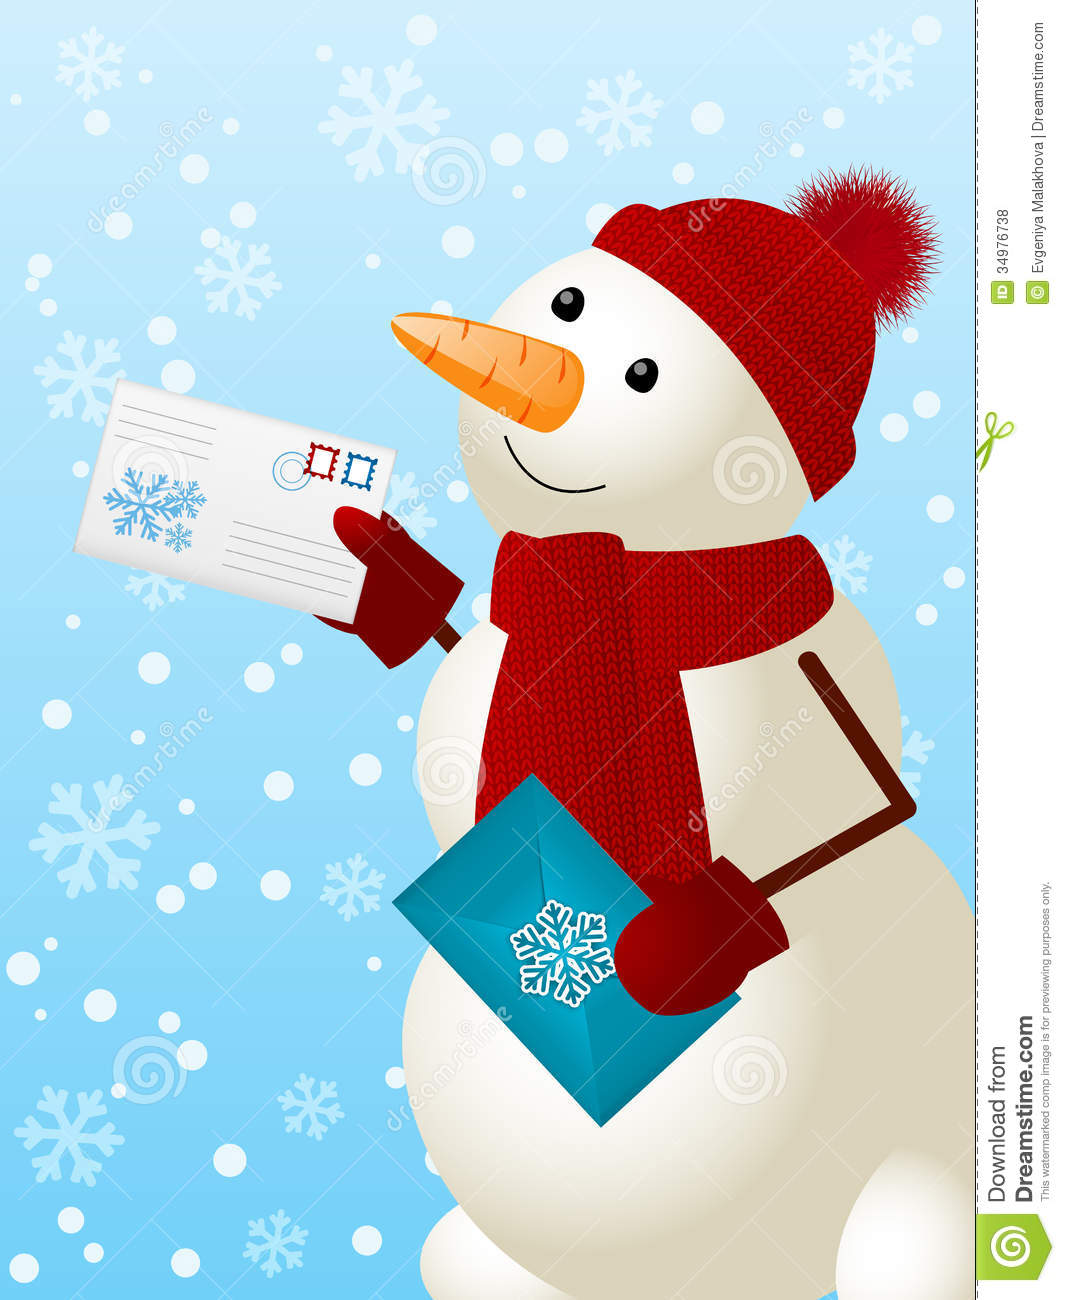 Funny snowman stock vector. Image of holiday, envelope ...